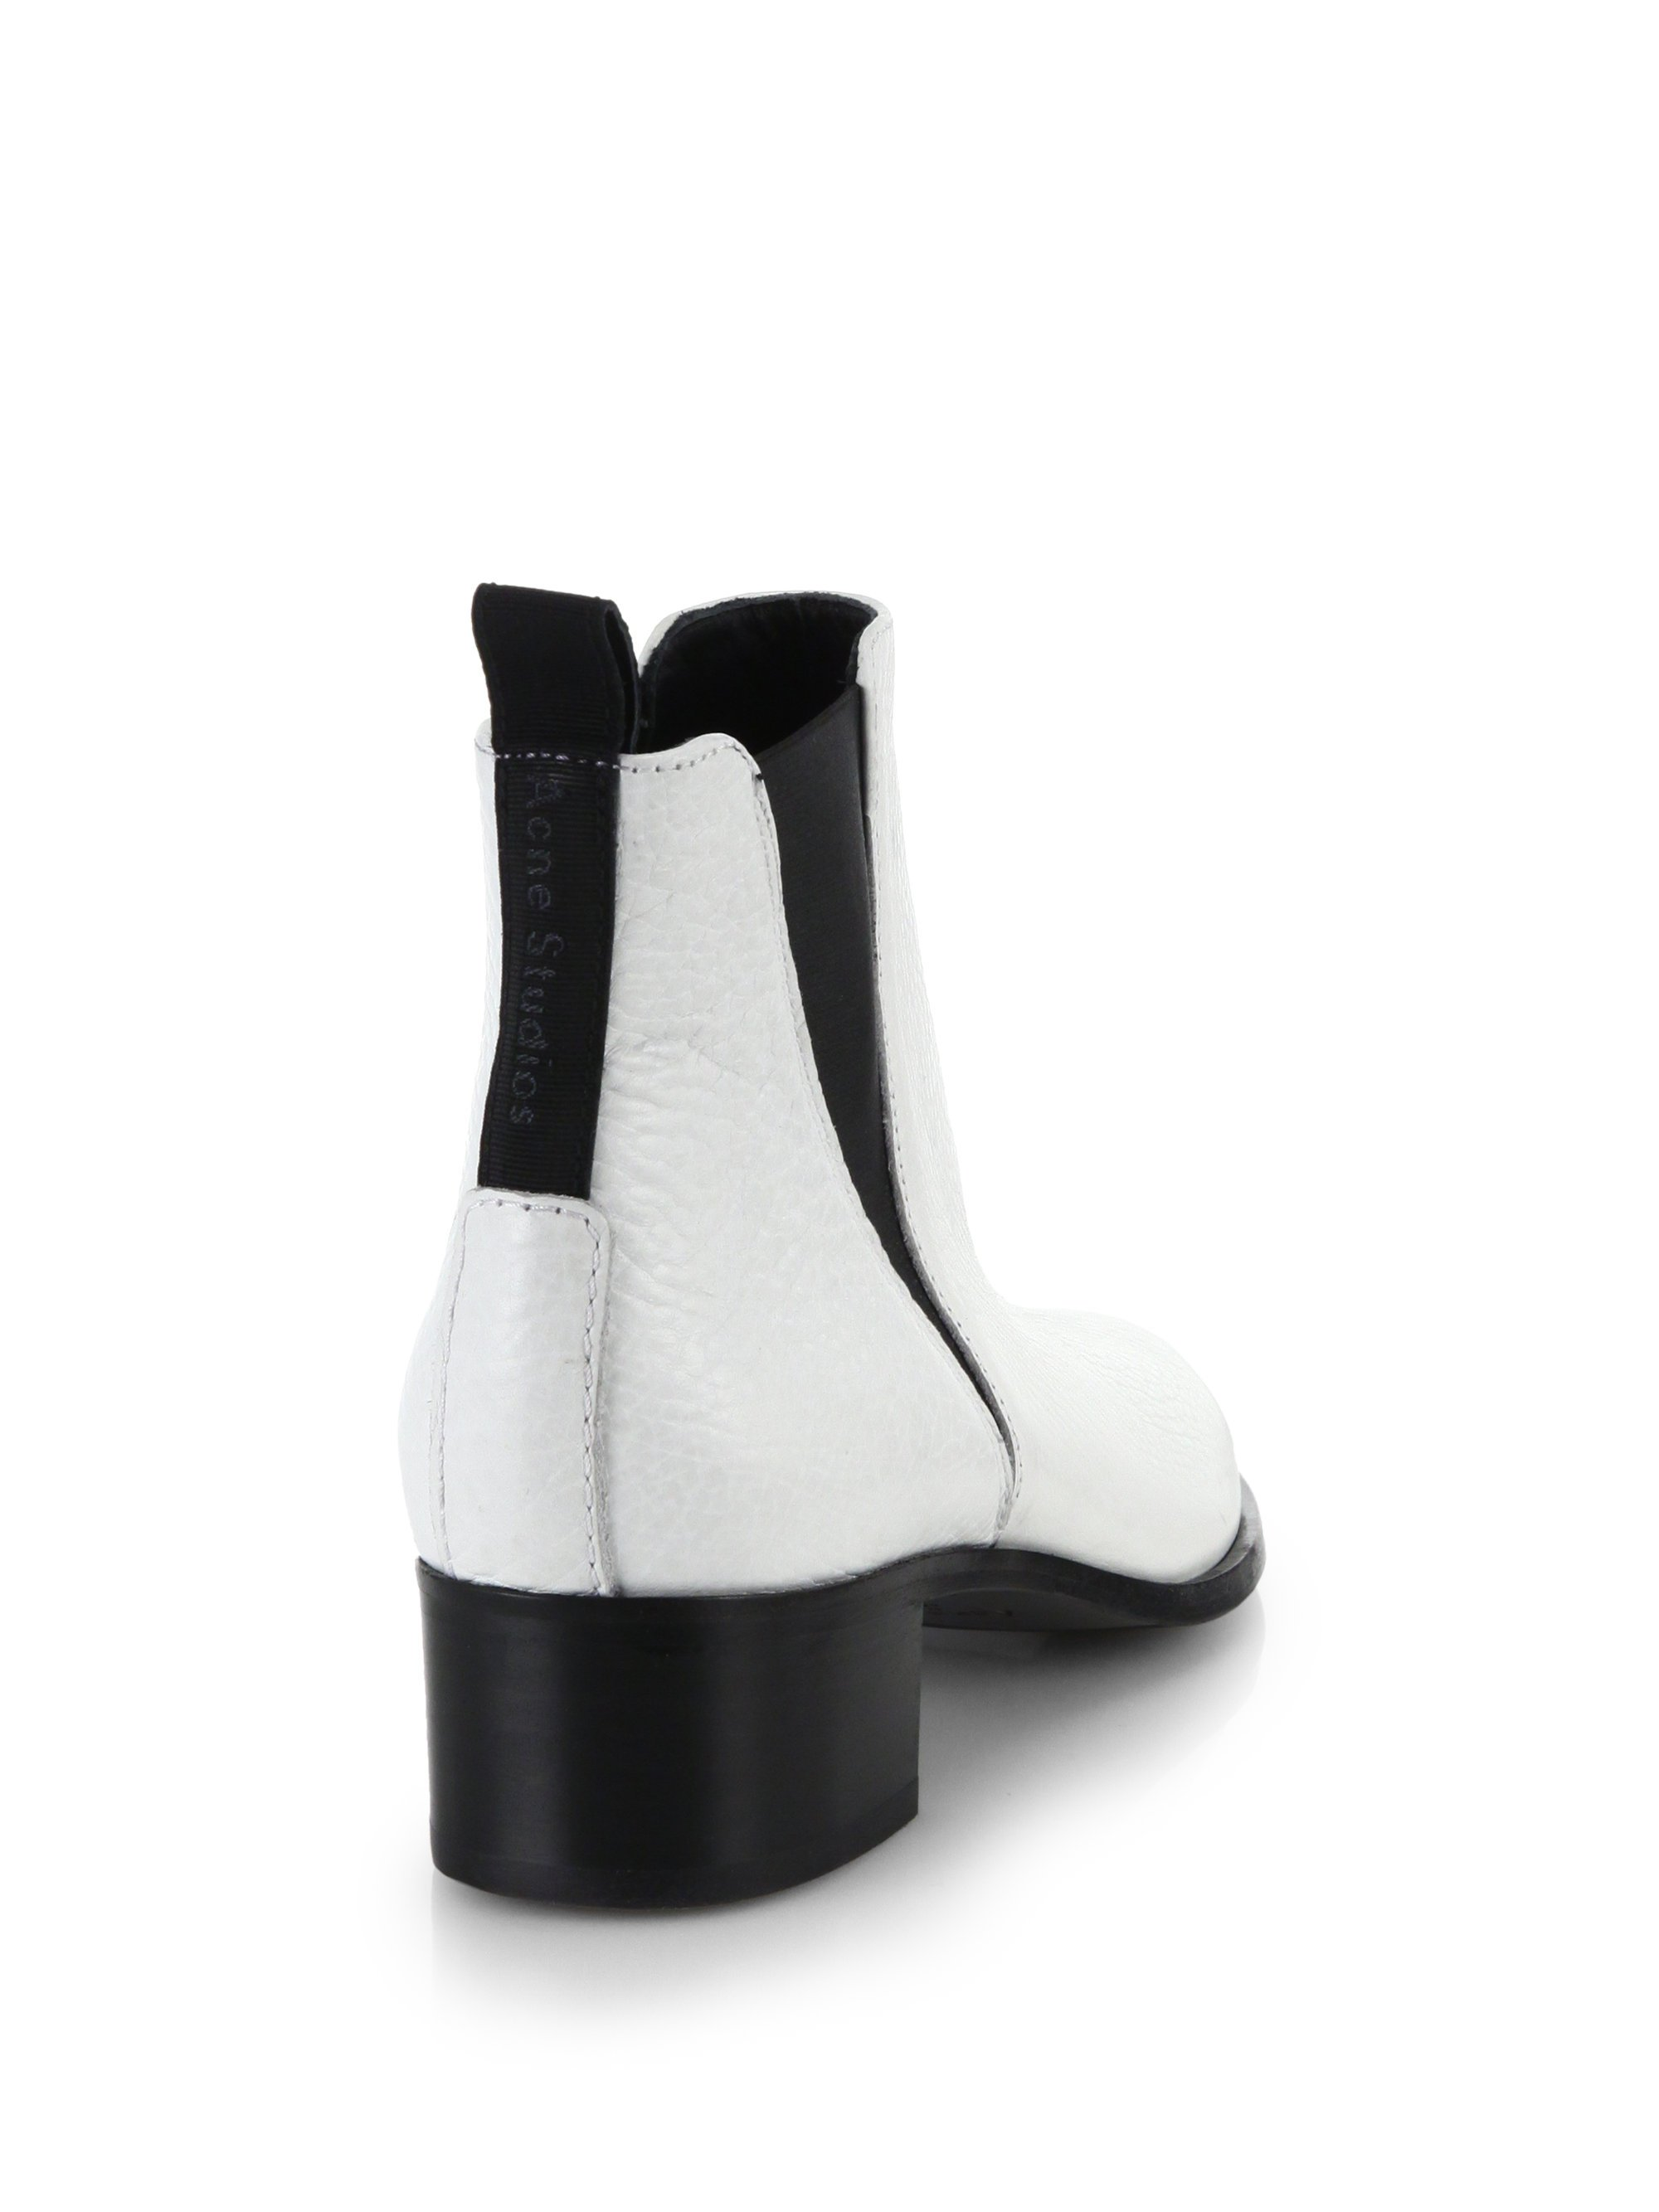 e009b91cc35 Lyst - Acne Studios Jensen Contrast Pebbled Leather Ankle Boots in ...